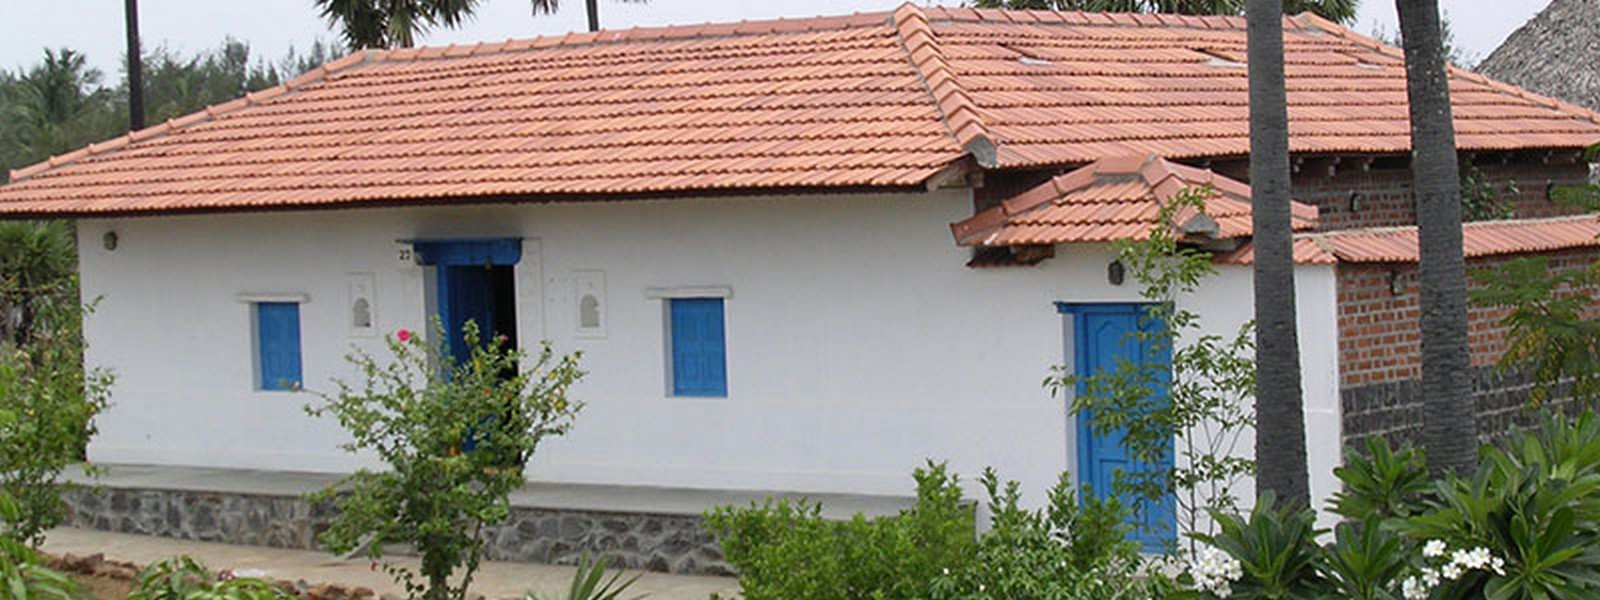 10 Examples of Vernacular architecture in South India - Sheet10